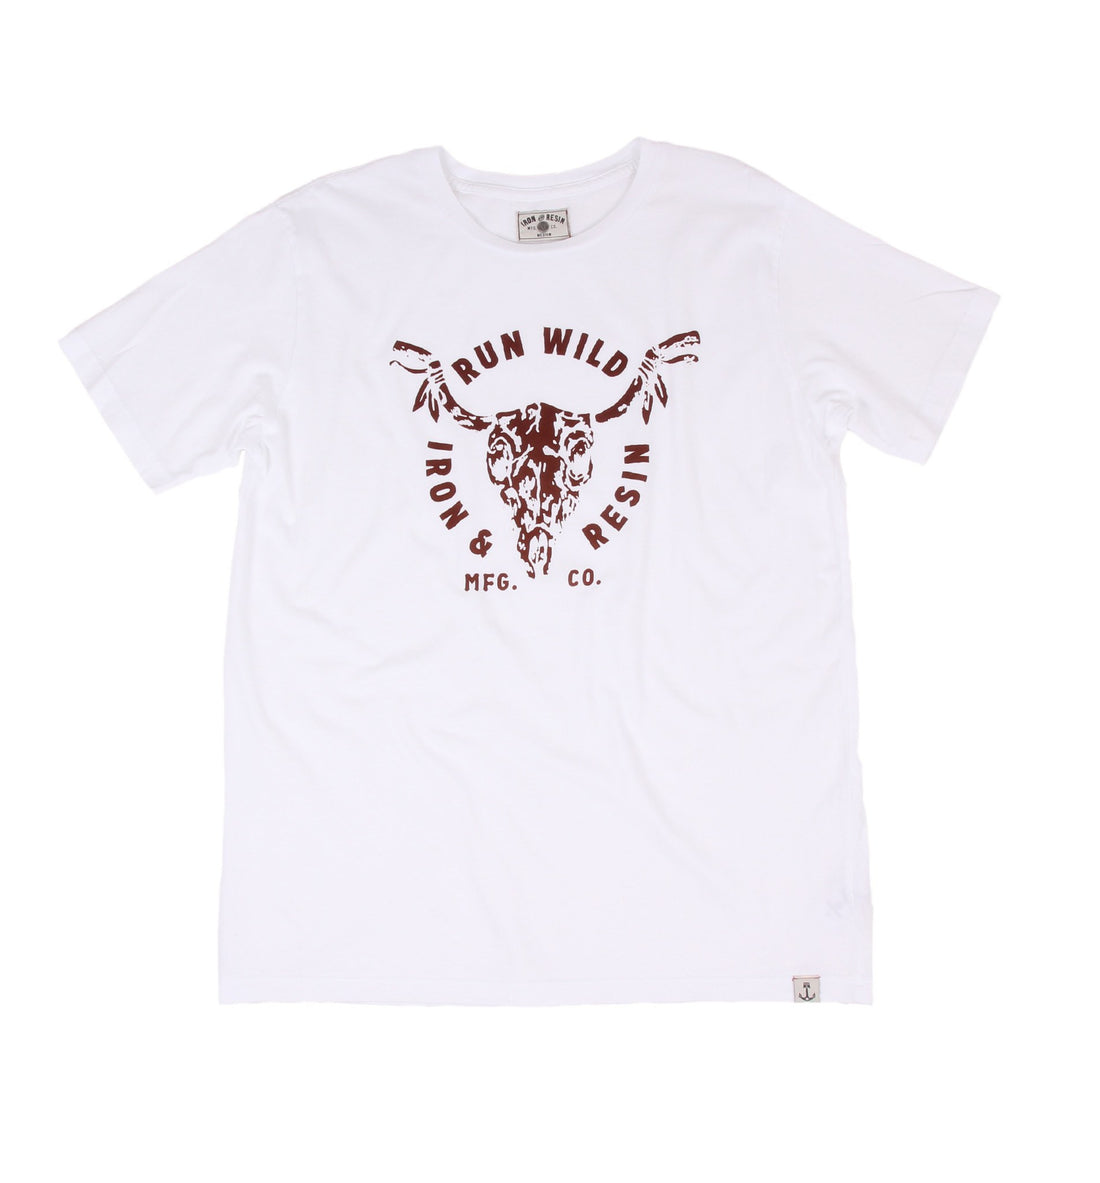 Run Wild Tee - Tops - Iron and Resin